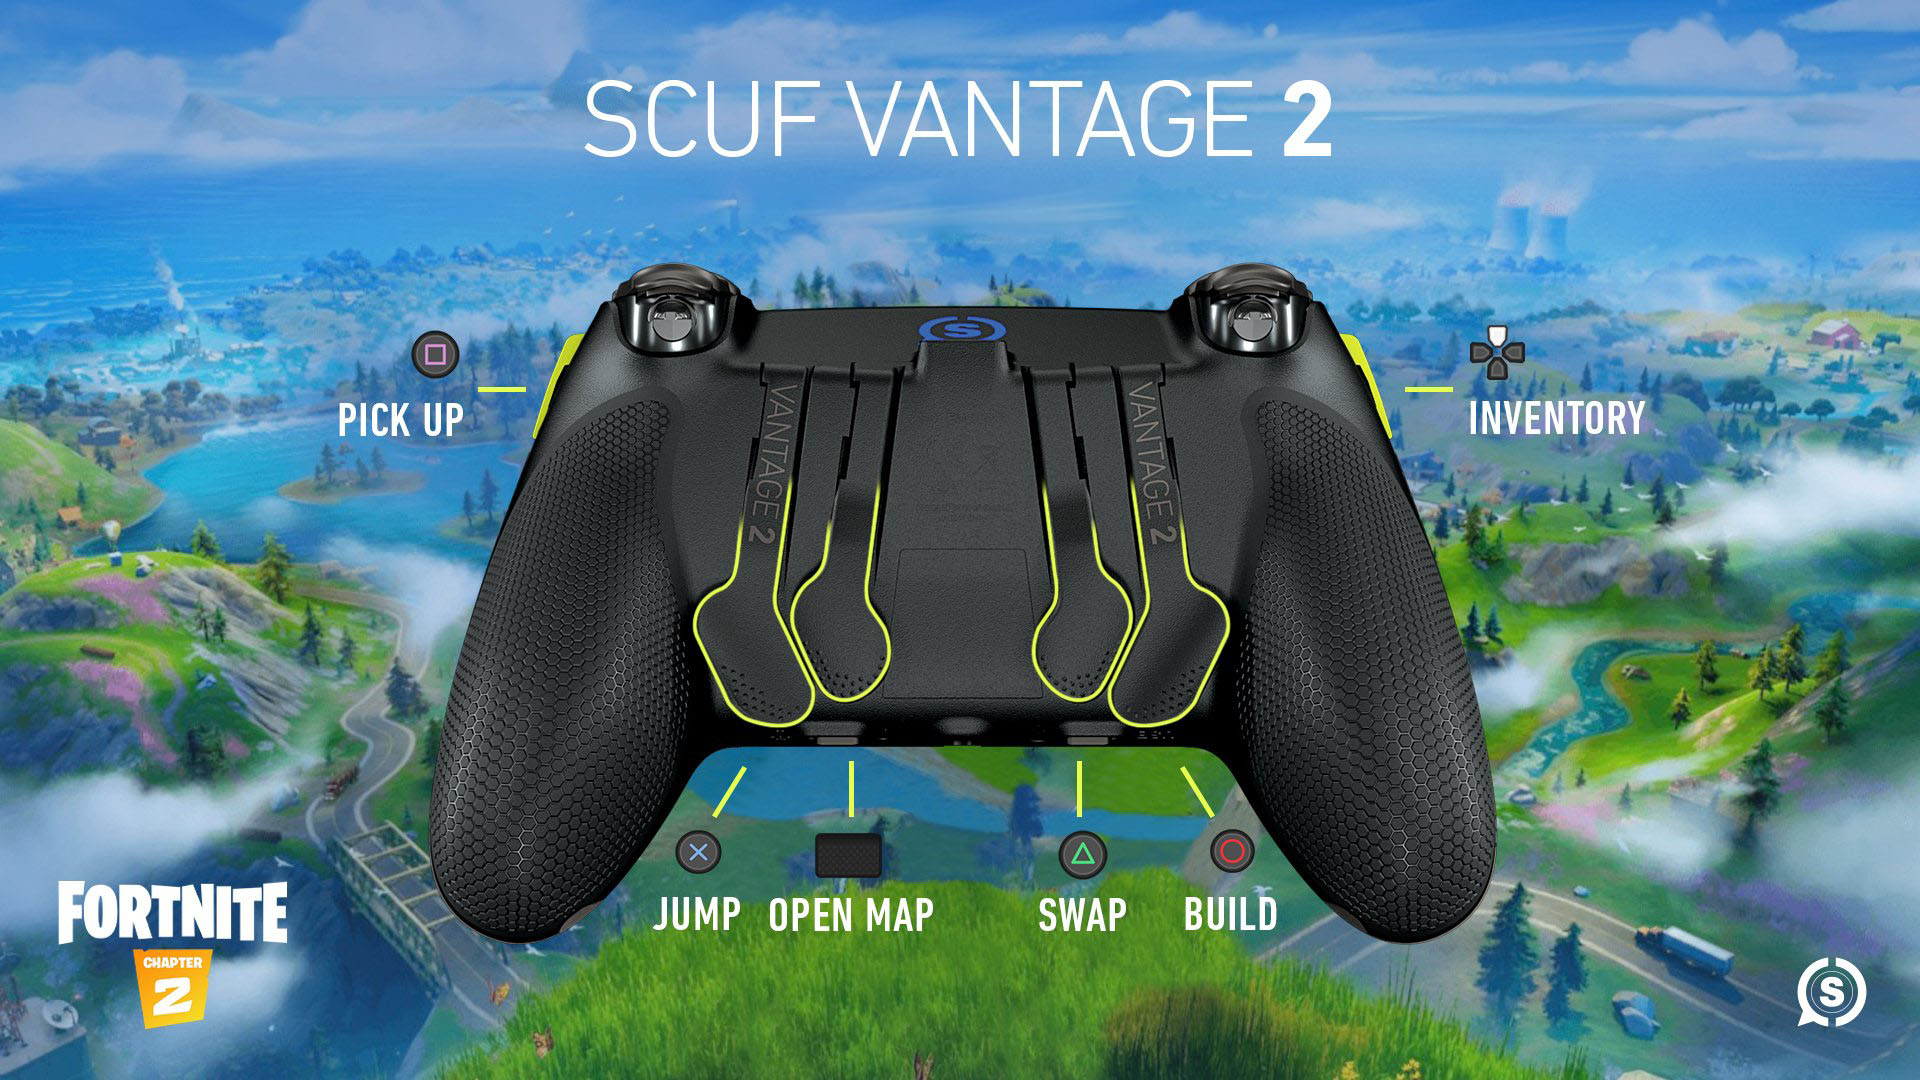 SCUF Vantage 2 Fortnite Controller Set Up